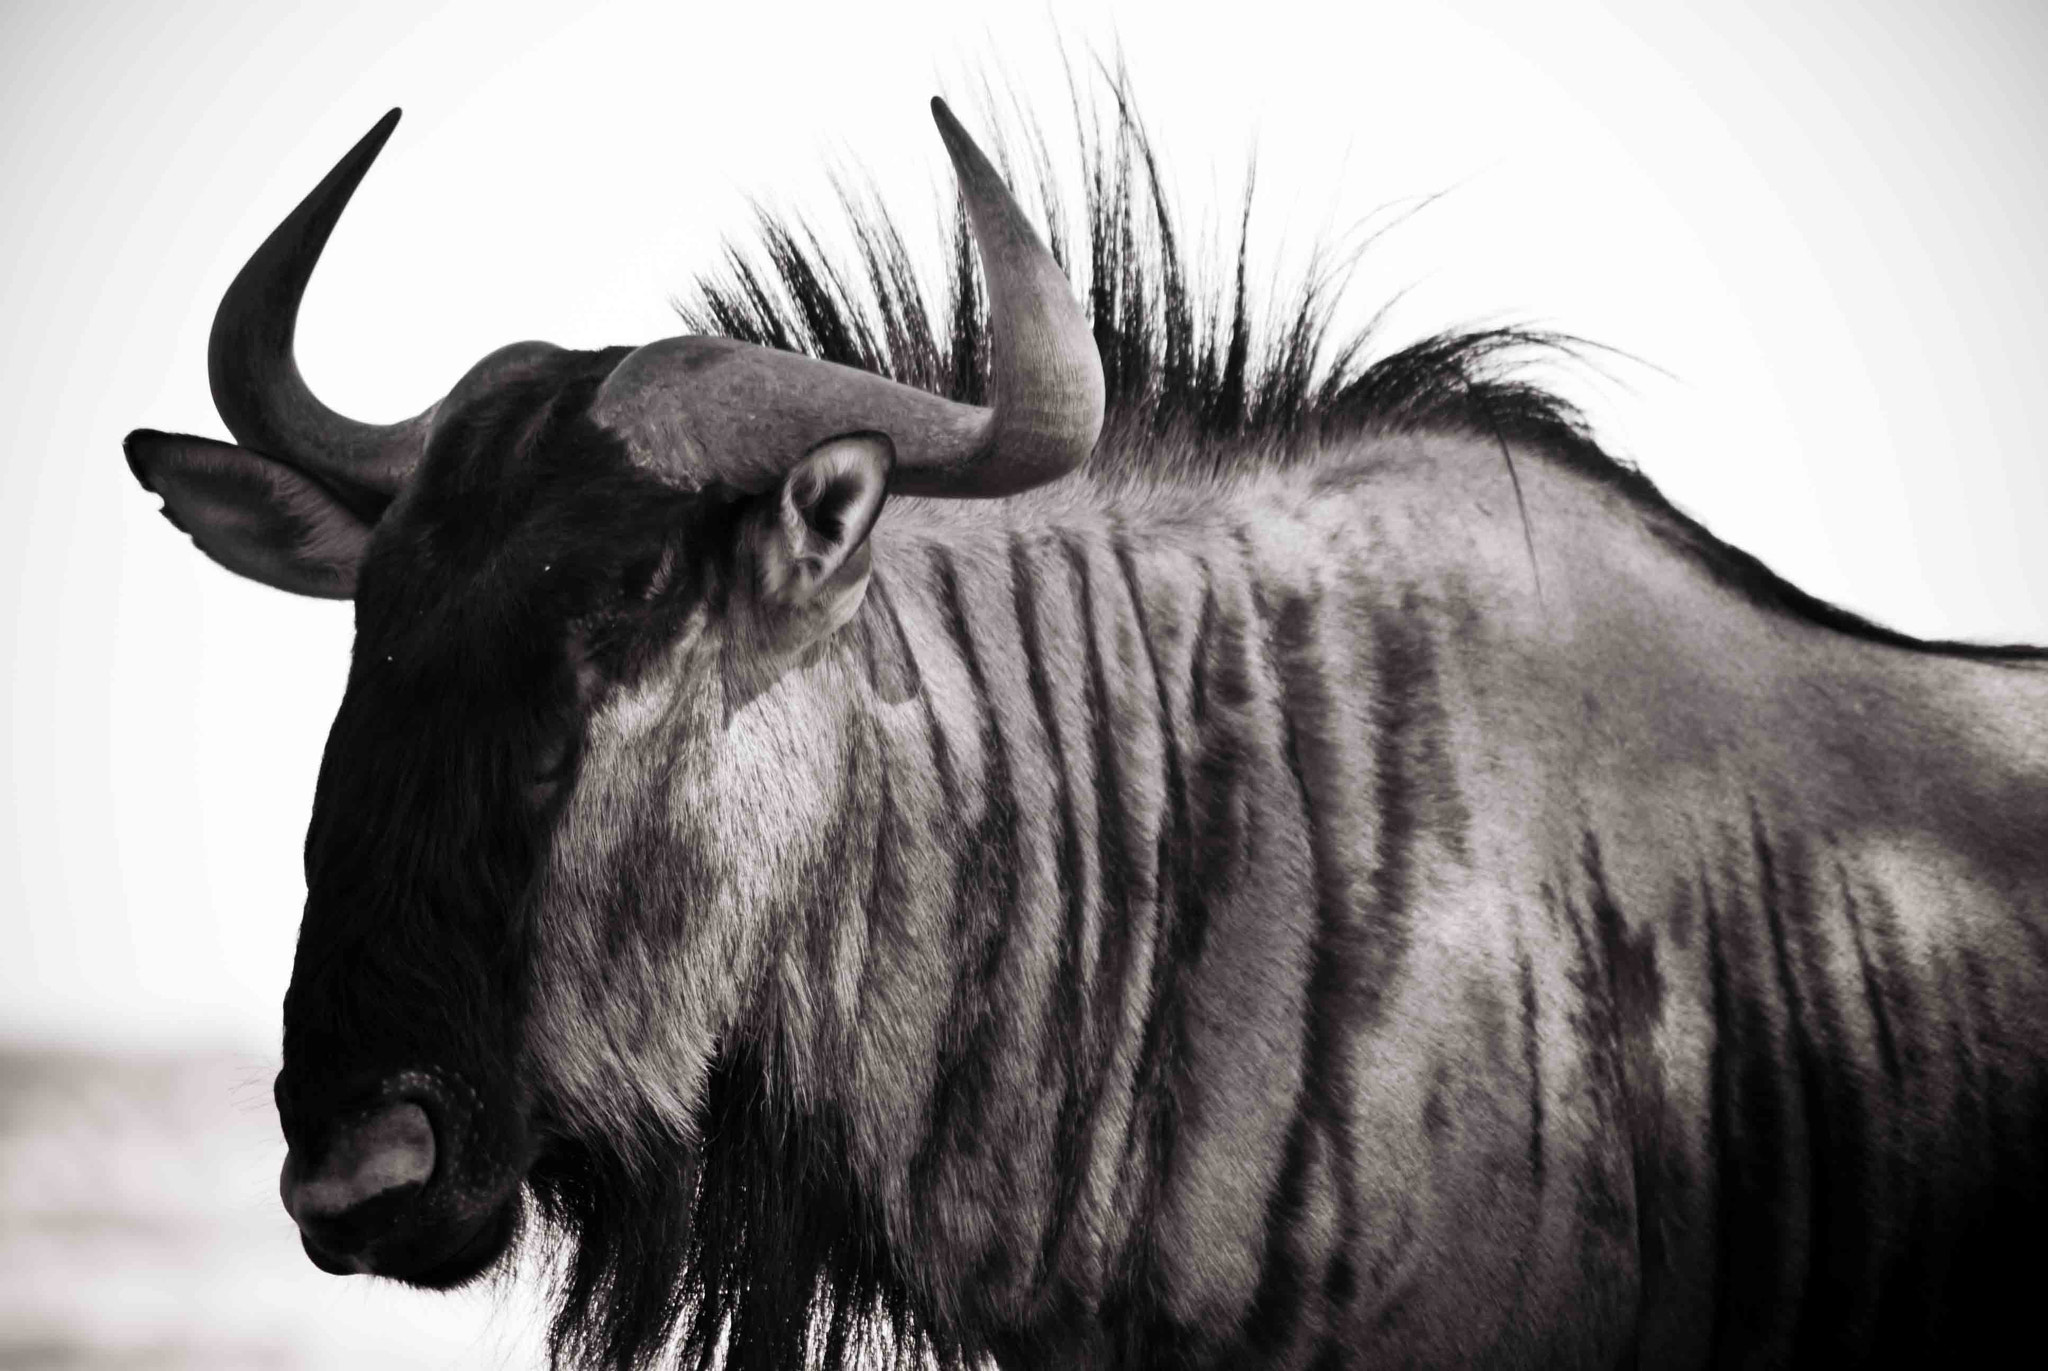 Photograph Wild Beast by Pedré Havenga on 500px